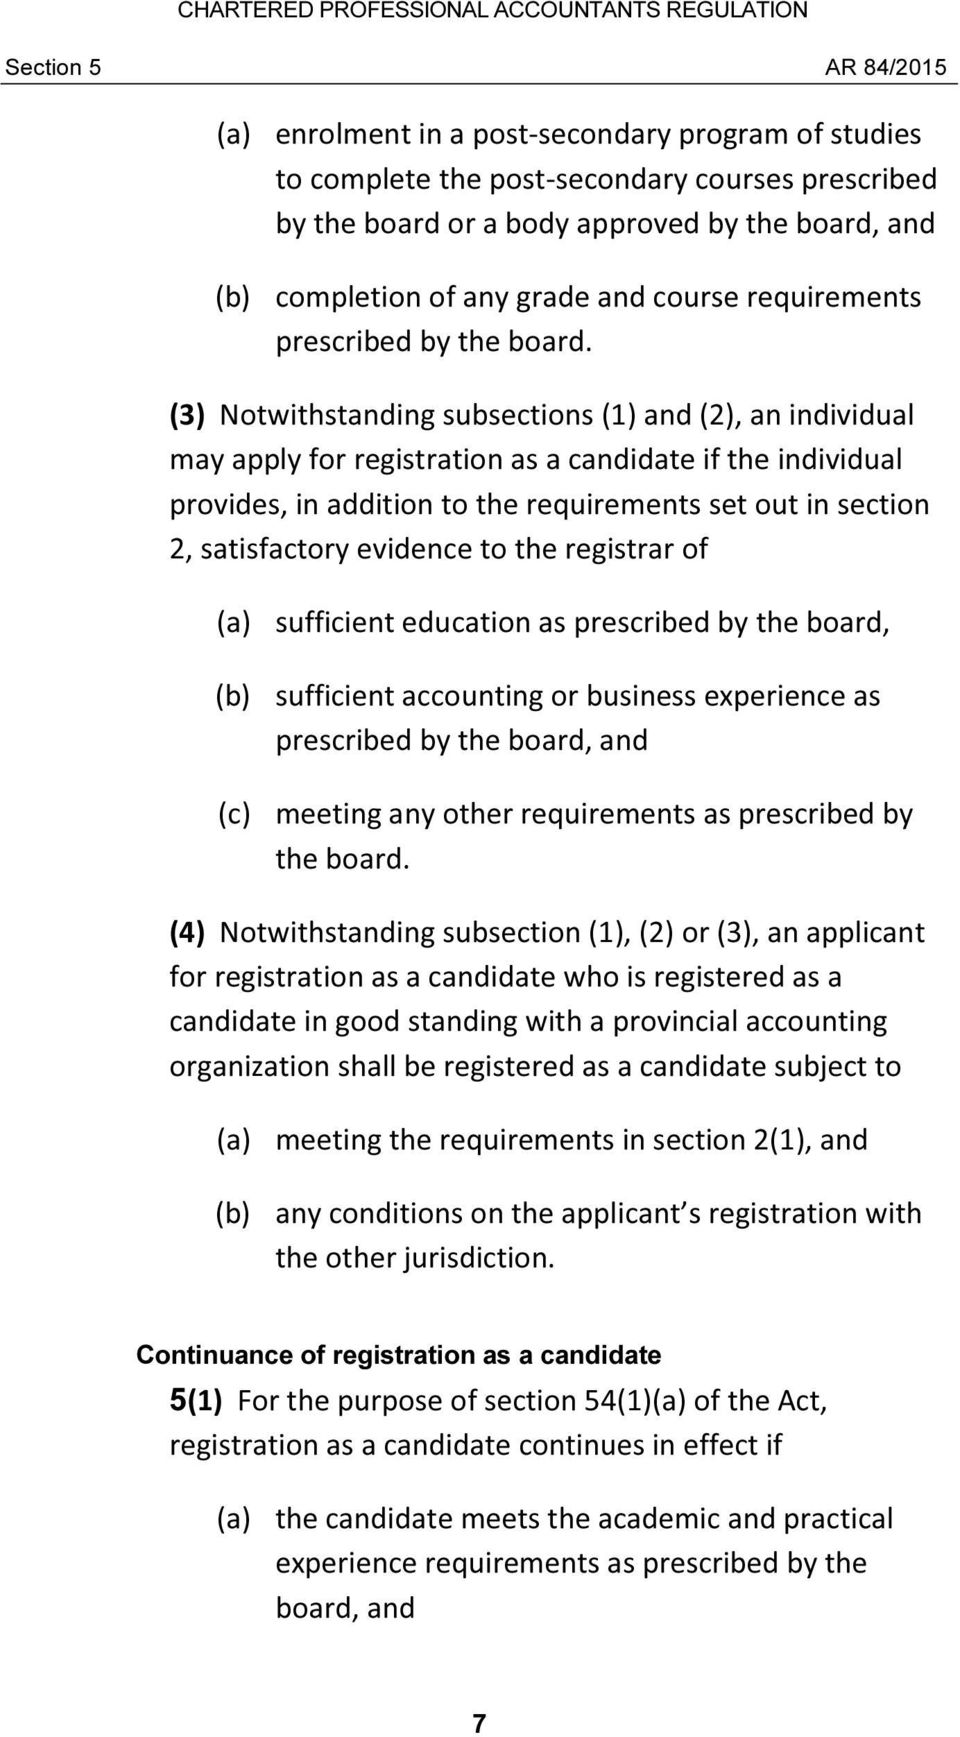 (3) Notwithstanding subsections (1) and (2), an individual may apply for registration as a candidate if the individual provides, in addition to the requirements set out in section 2, satisfactory